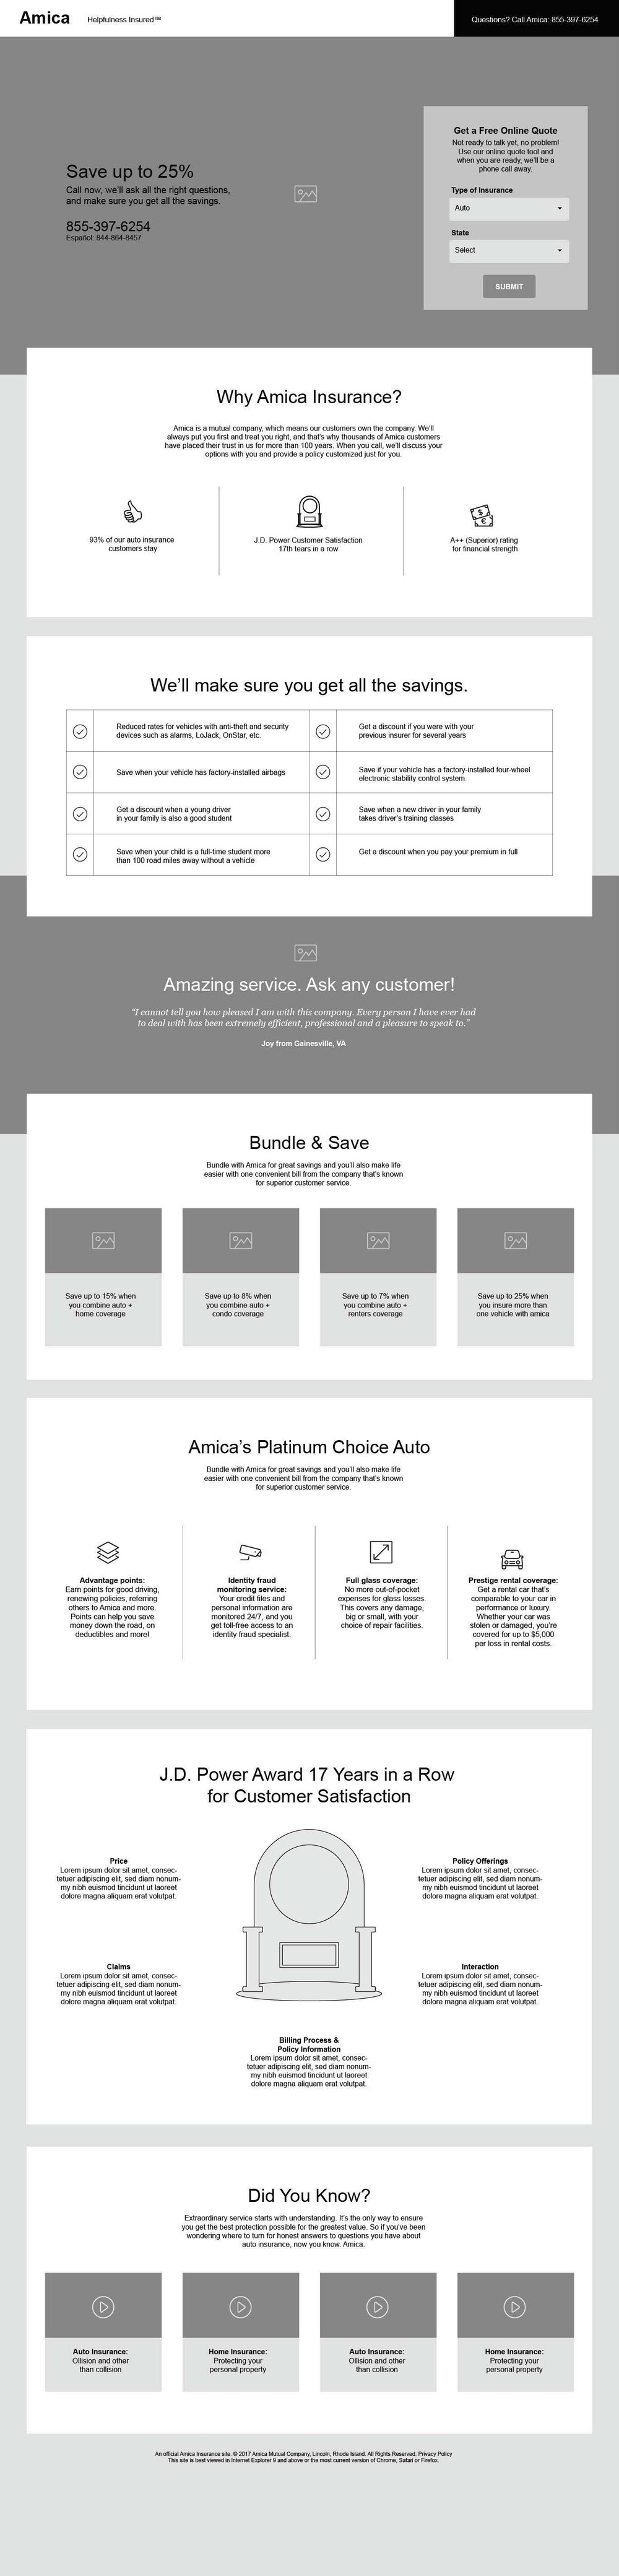 Amica_UX_Concepts_020217_Page_04.jpg